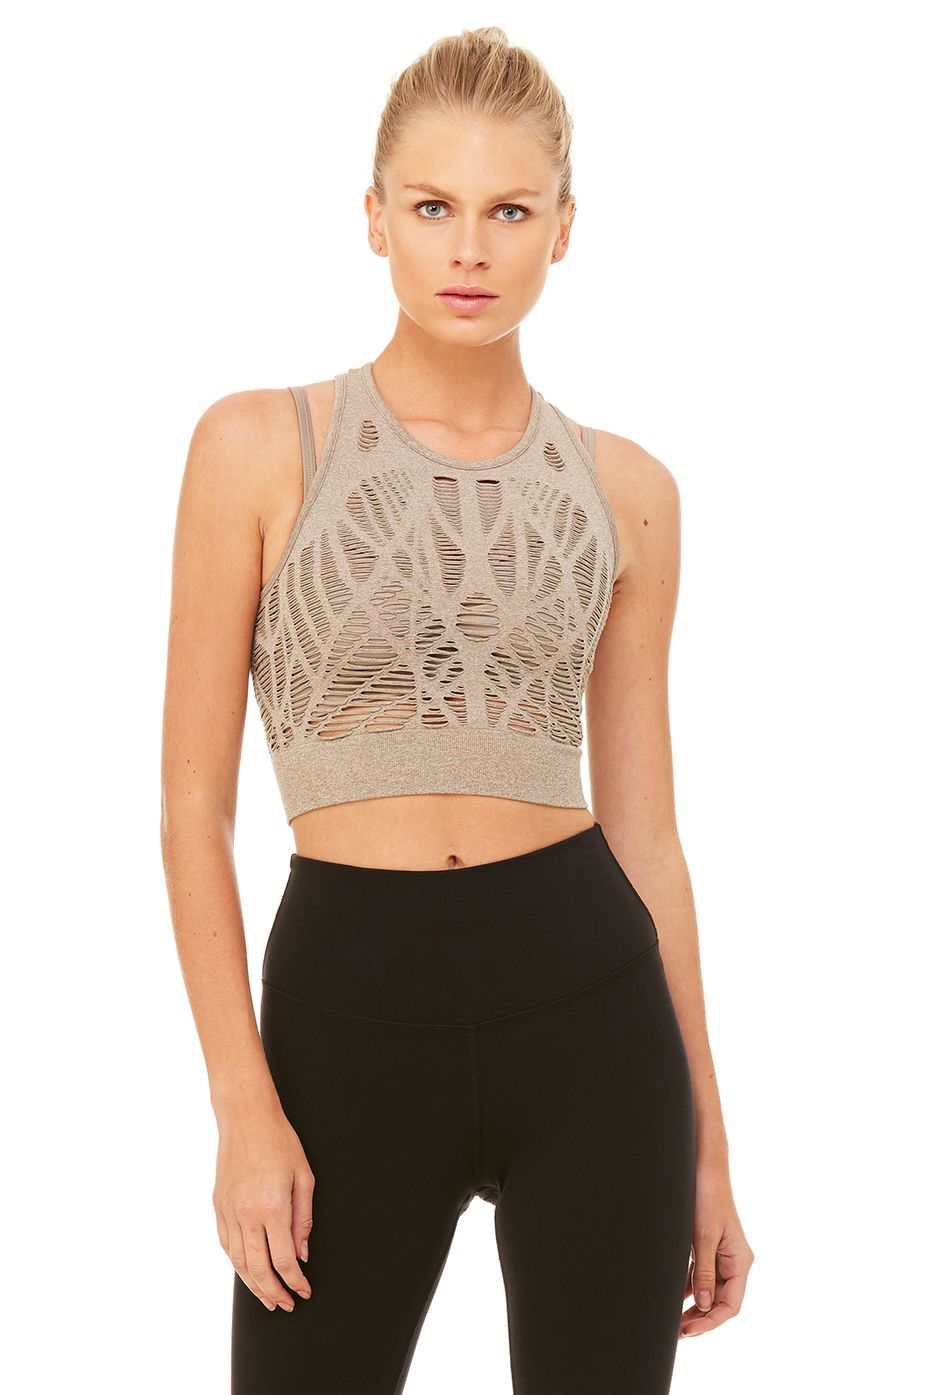 Alo Yoga Womens Vixen Fitted Crop Tank